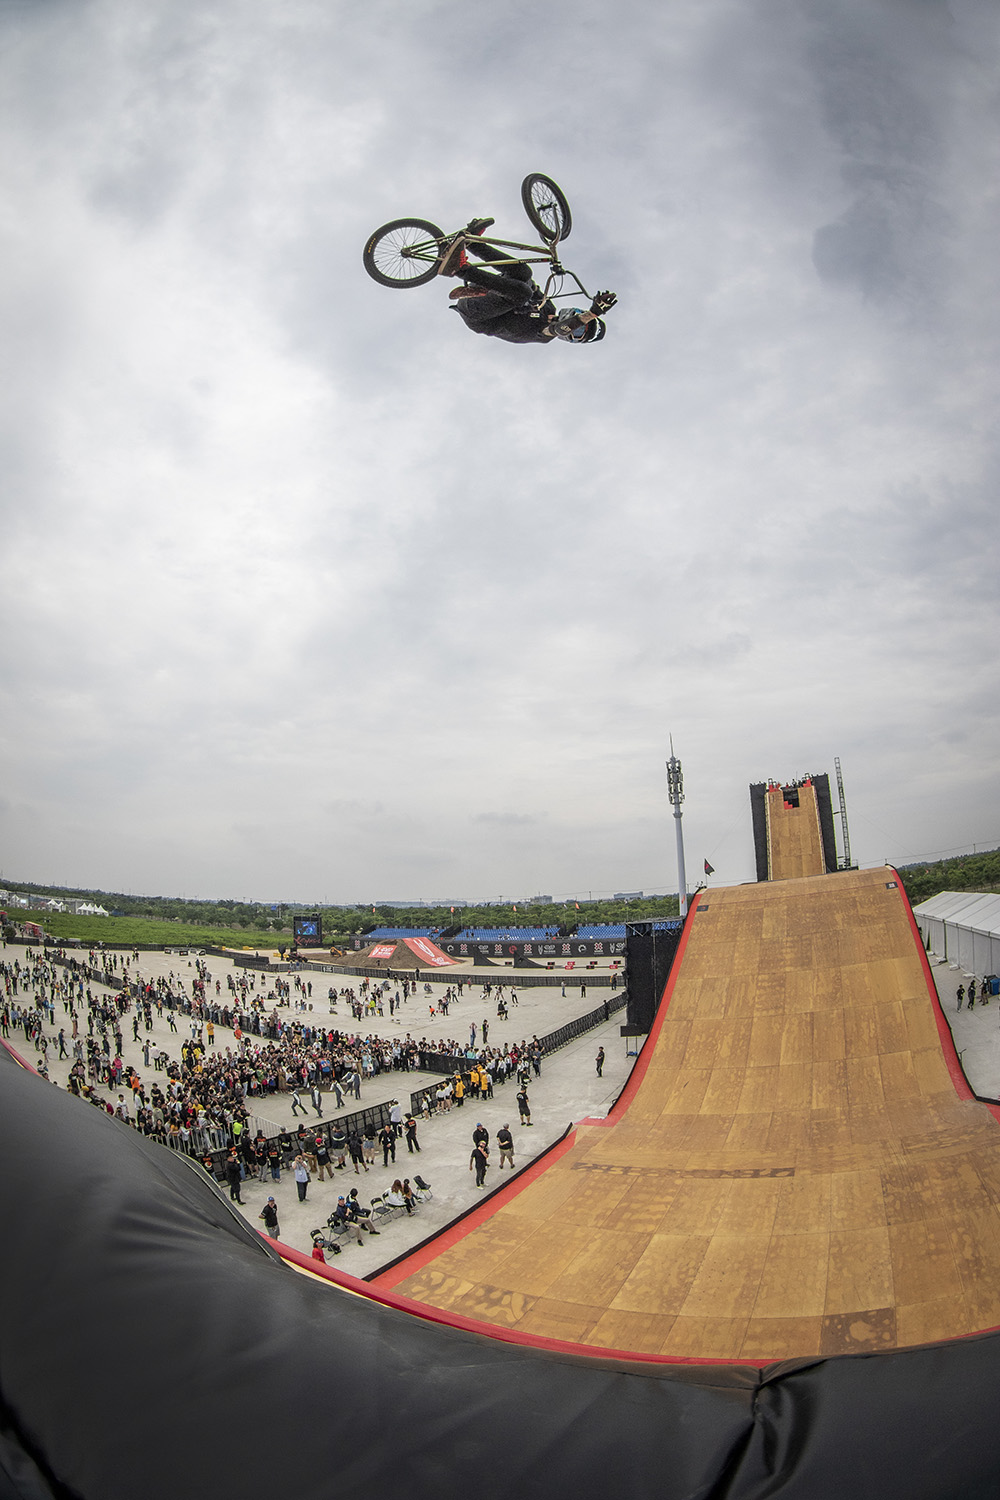 Monster Energy's James Foster Takes Bronze in BMX Big Air at X Games